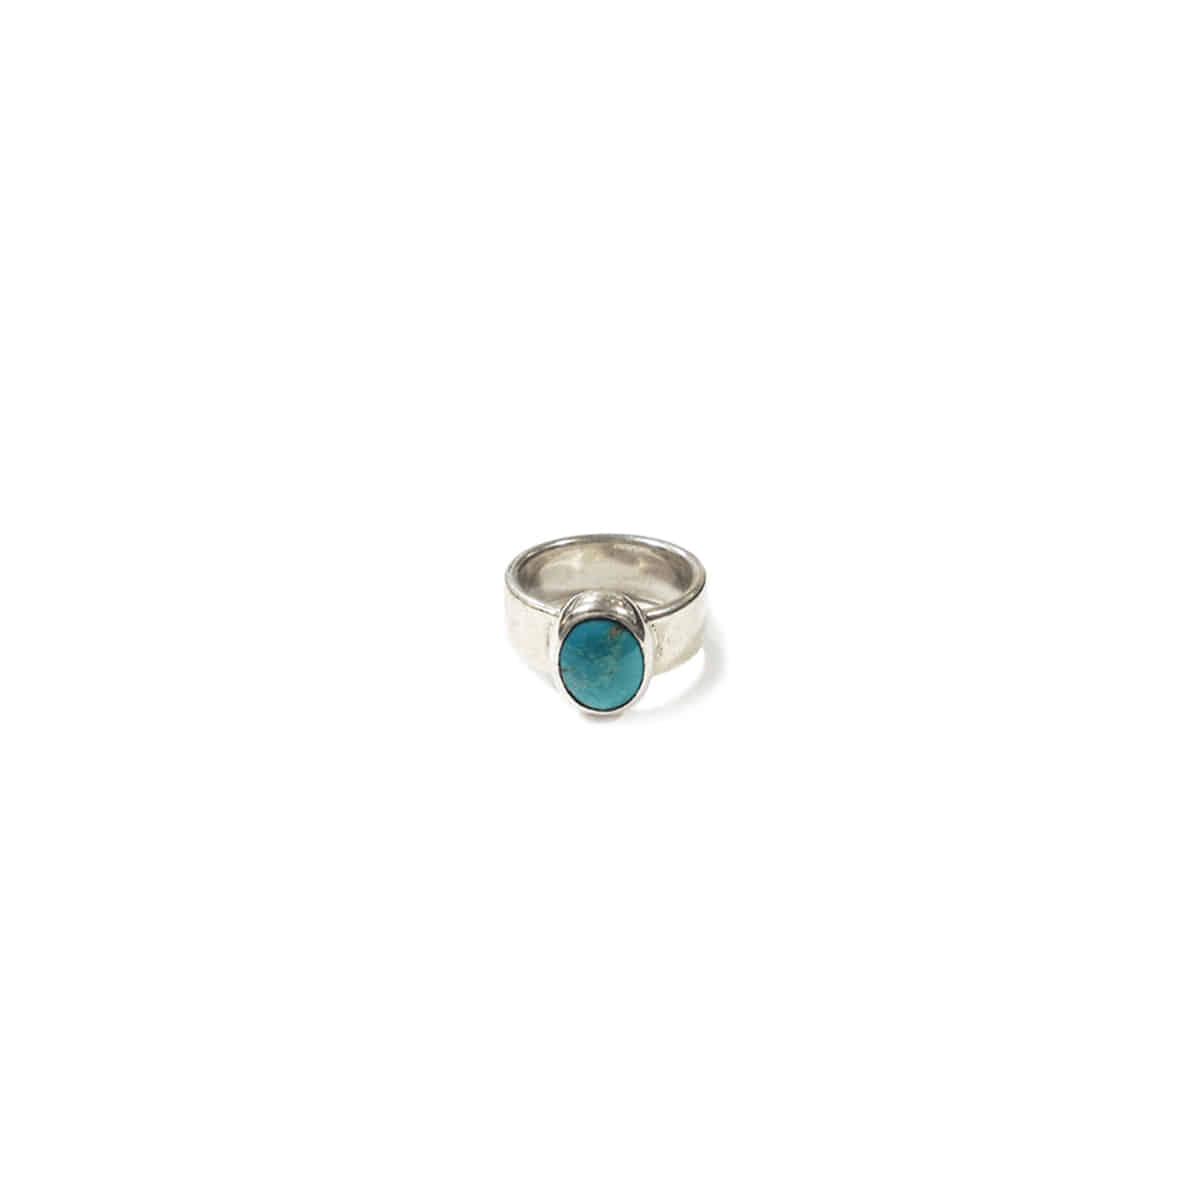 [NORTH WORKS] 900 SILVER TURQUOISE RING 'W-028'